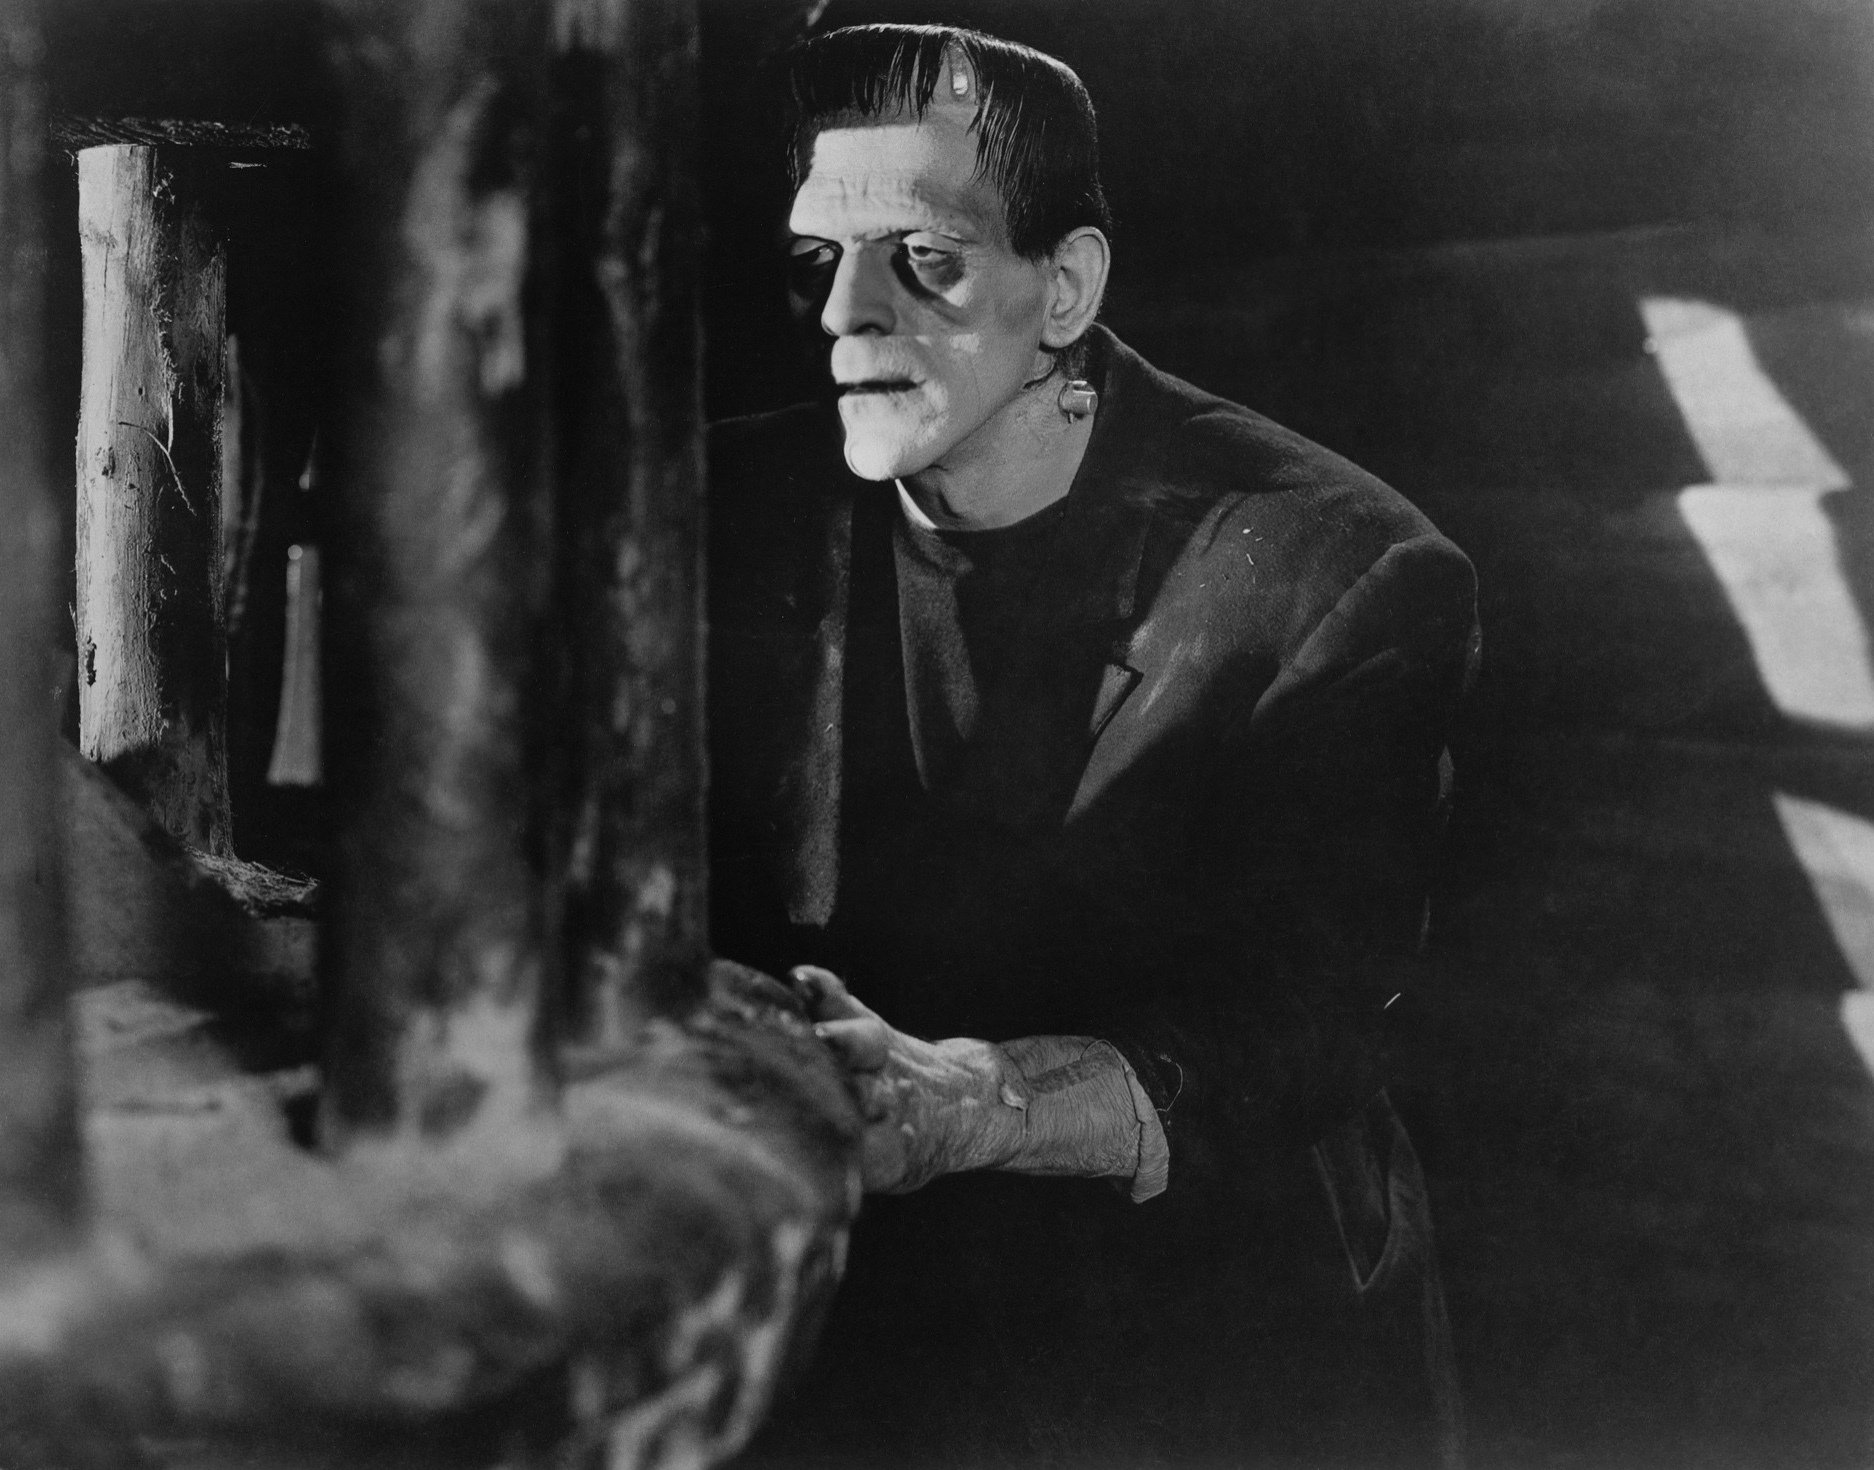 Mary Shelley, the Author of Frankenstein, Was Way Ahead of Her Times but Never Got Her Due